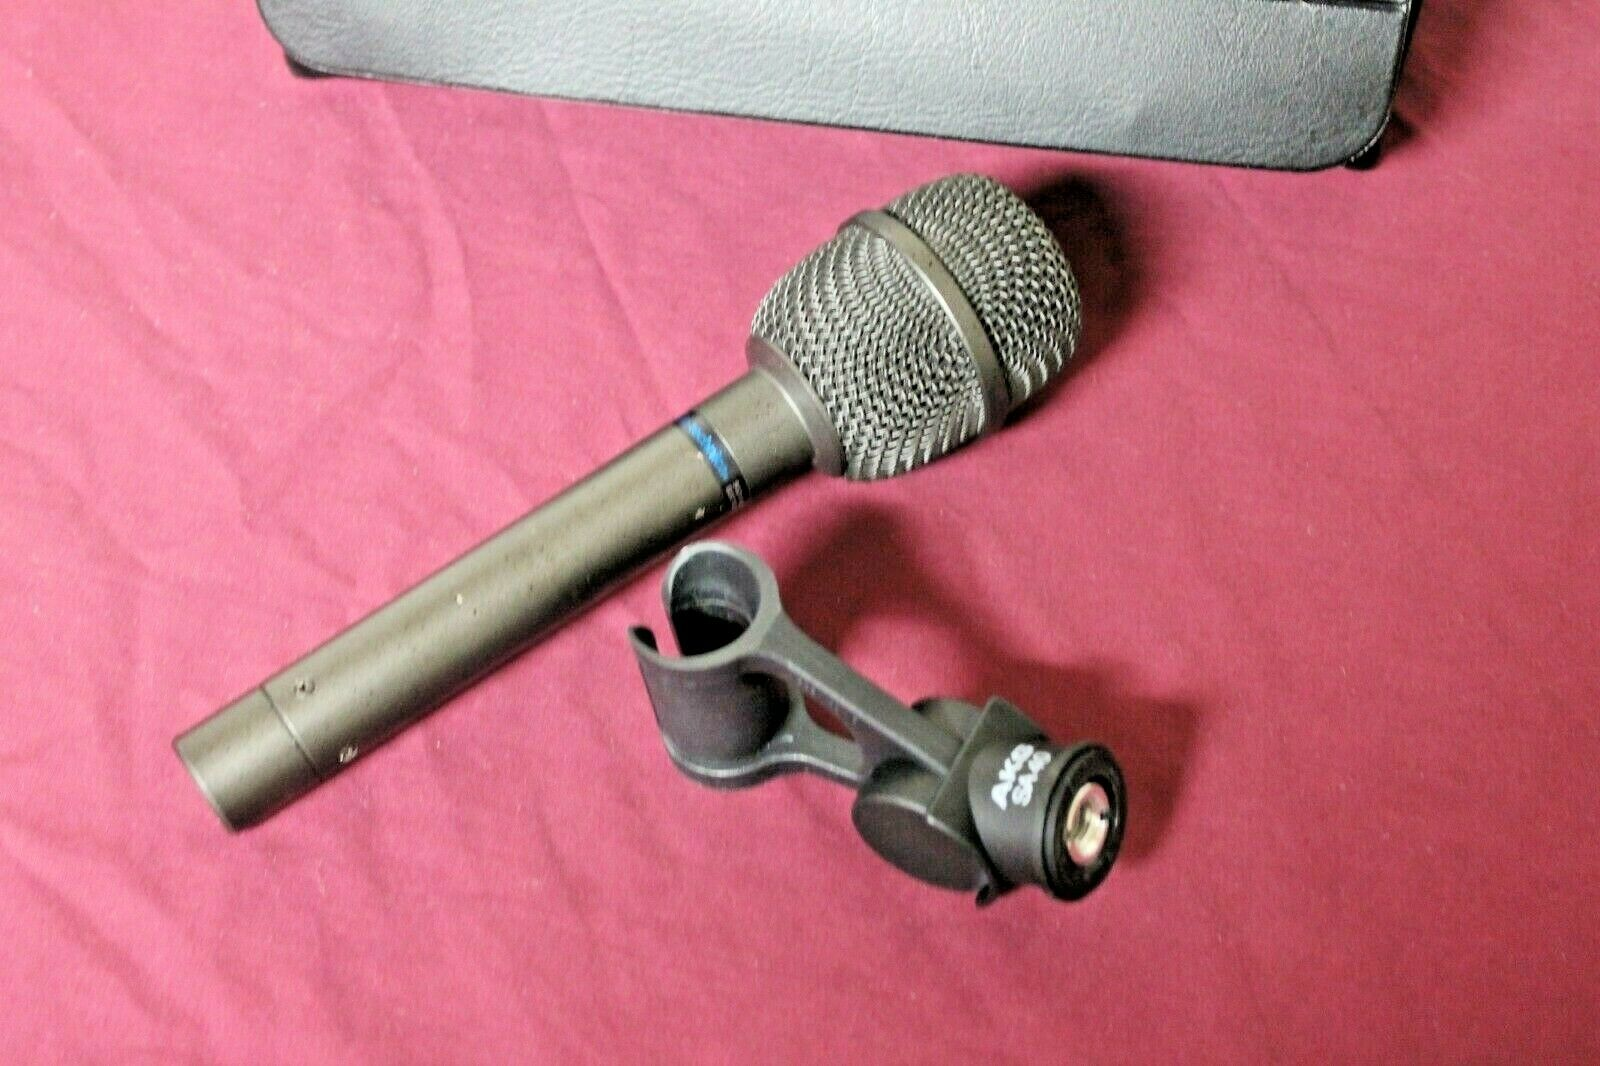 AUDIO TECHNICA ATM-31R Condenser MIC Microphone with SA40 Clip and Case